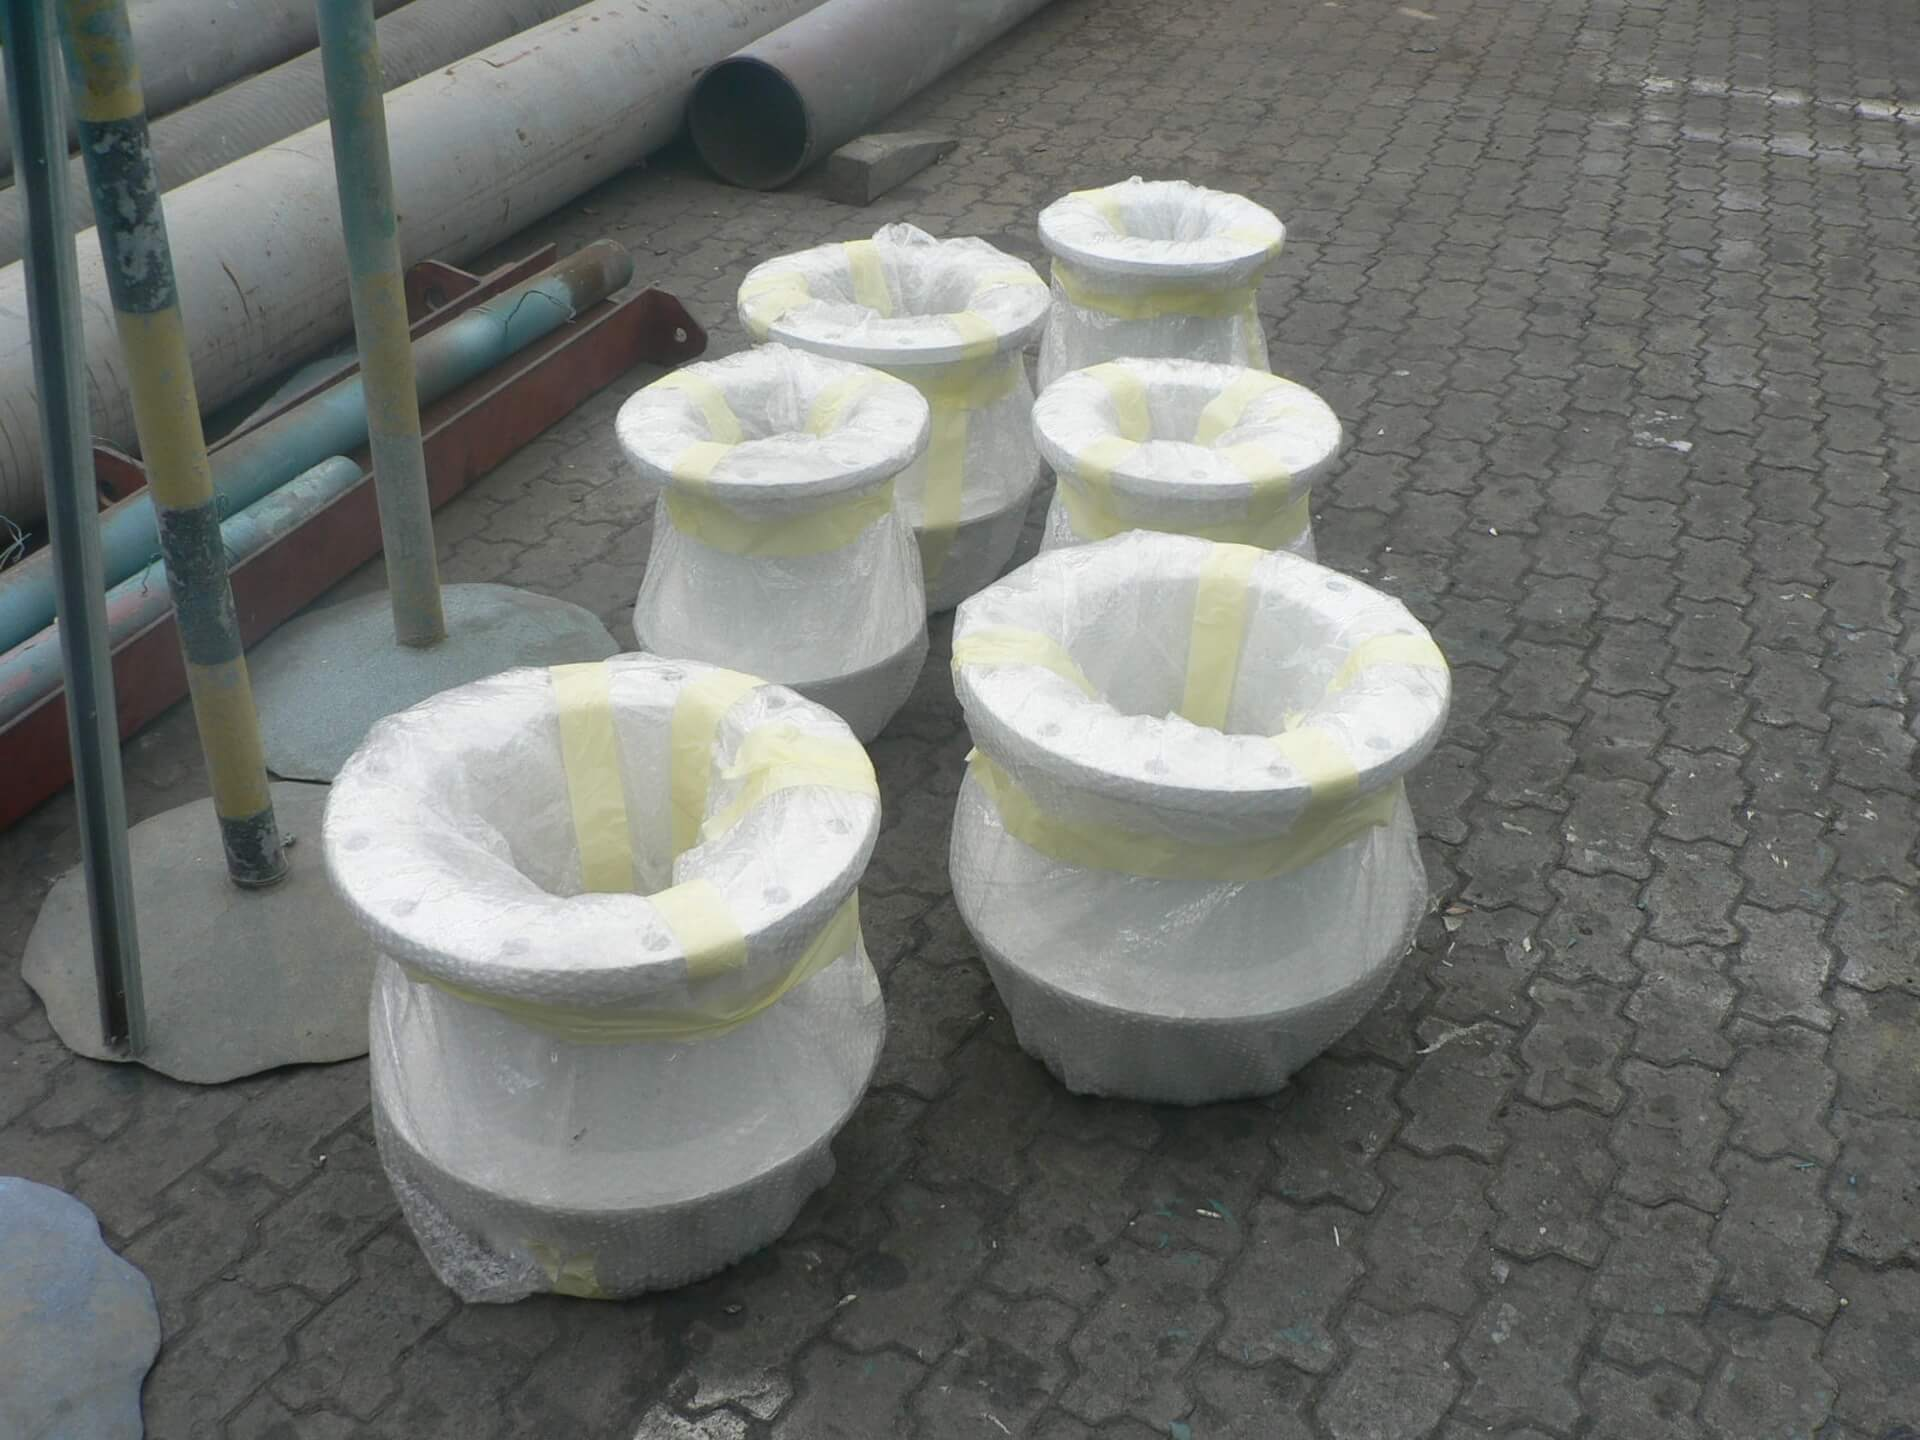 Specially coated puddle pipes